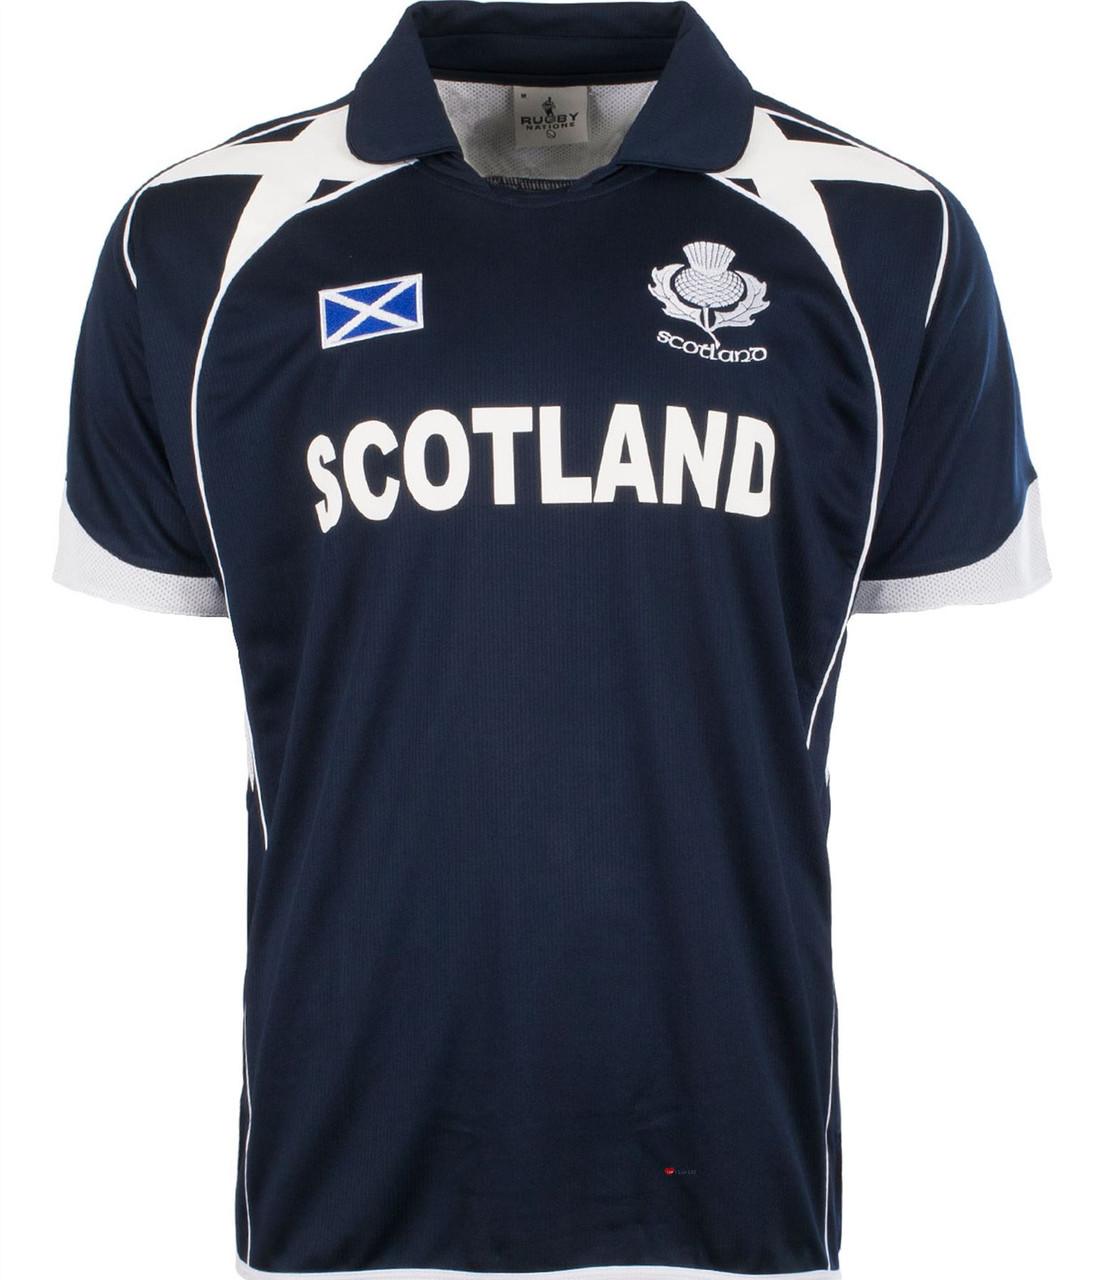 Gents Rugby Nations Rugby Shirt With Thistle Design In Navy Size 2X-Large